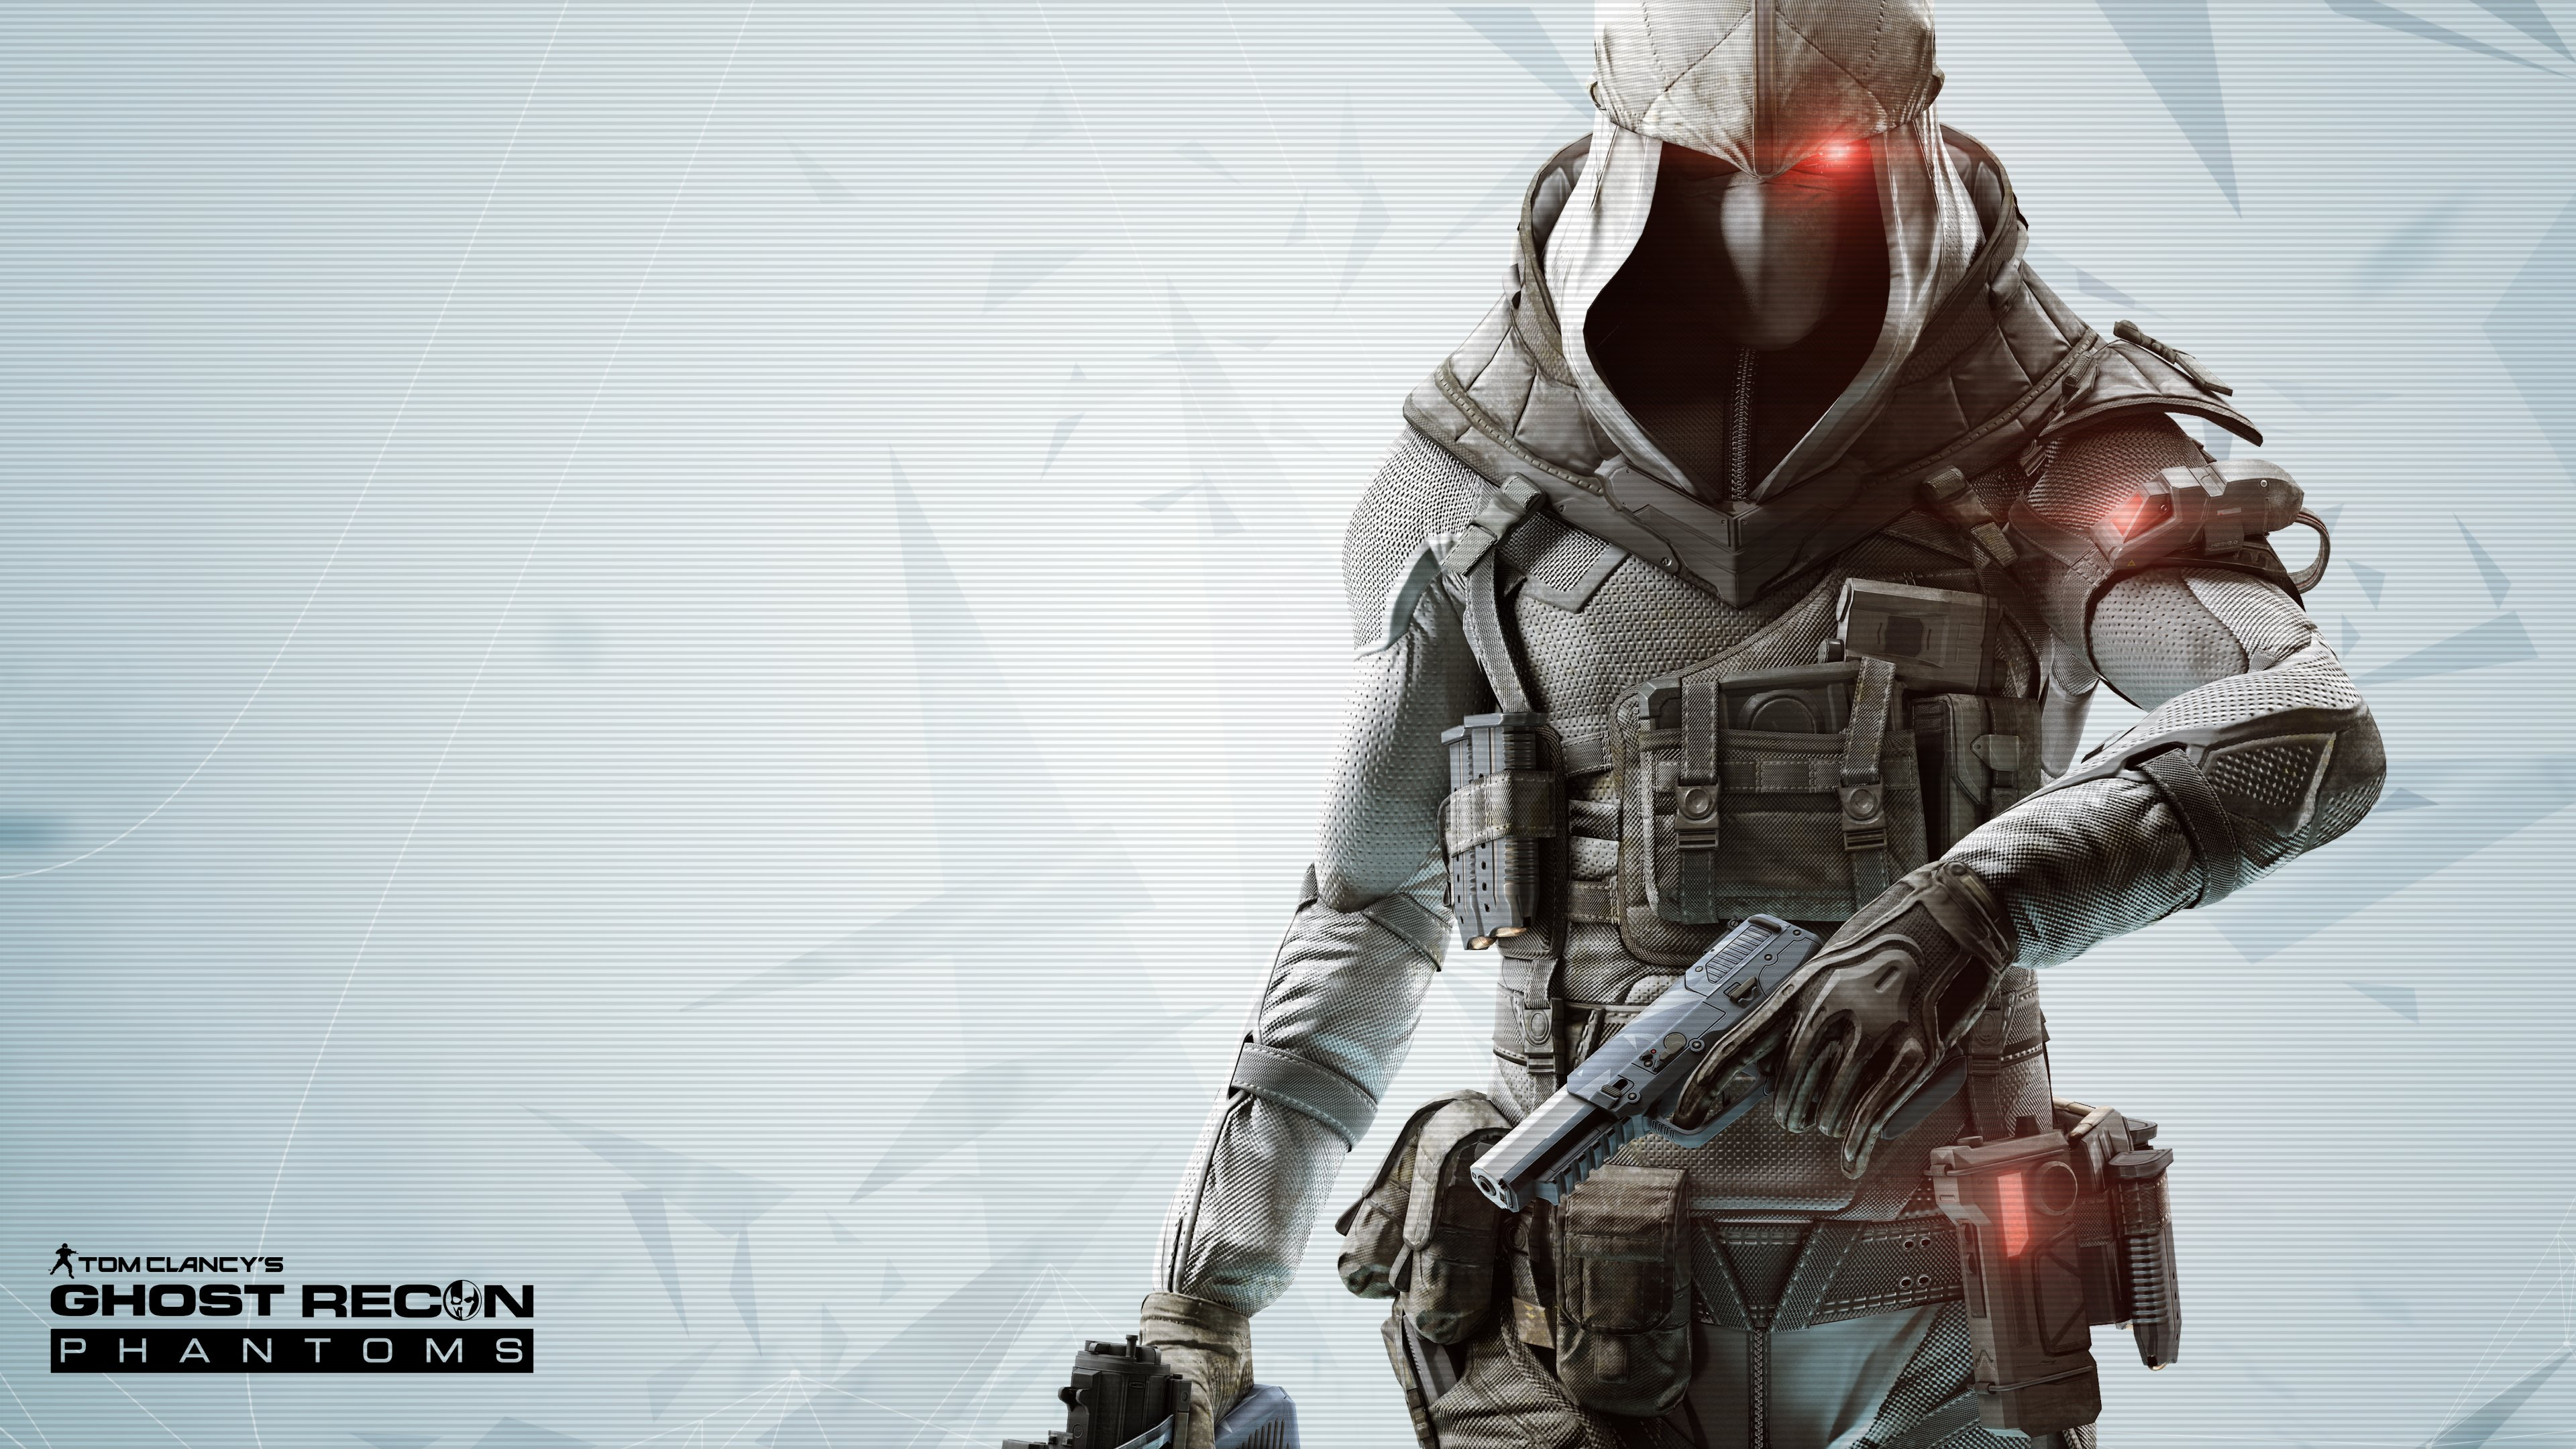 Tom Clancy s Ghost Recon Phantoms Wallpapers HD  - tom clancys ghost recon phantoms wallpapers